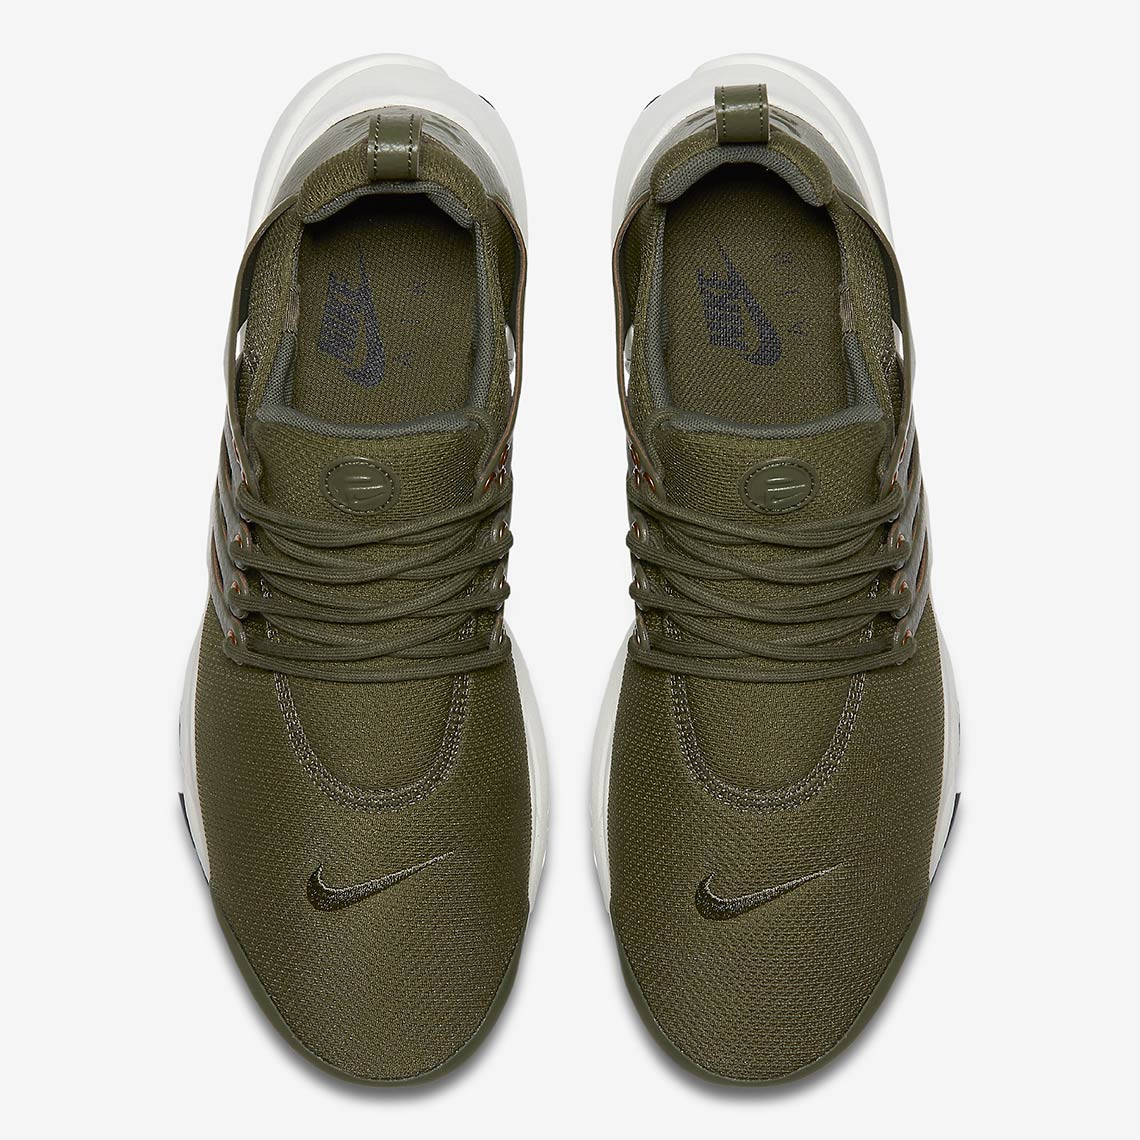 40f3550d63 Nike Air Presto Premium 848141-200 + 848141-600 Available Now ...